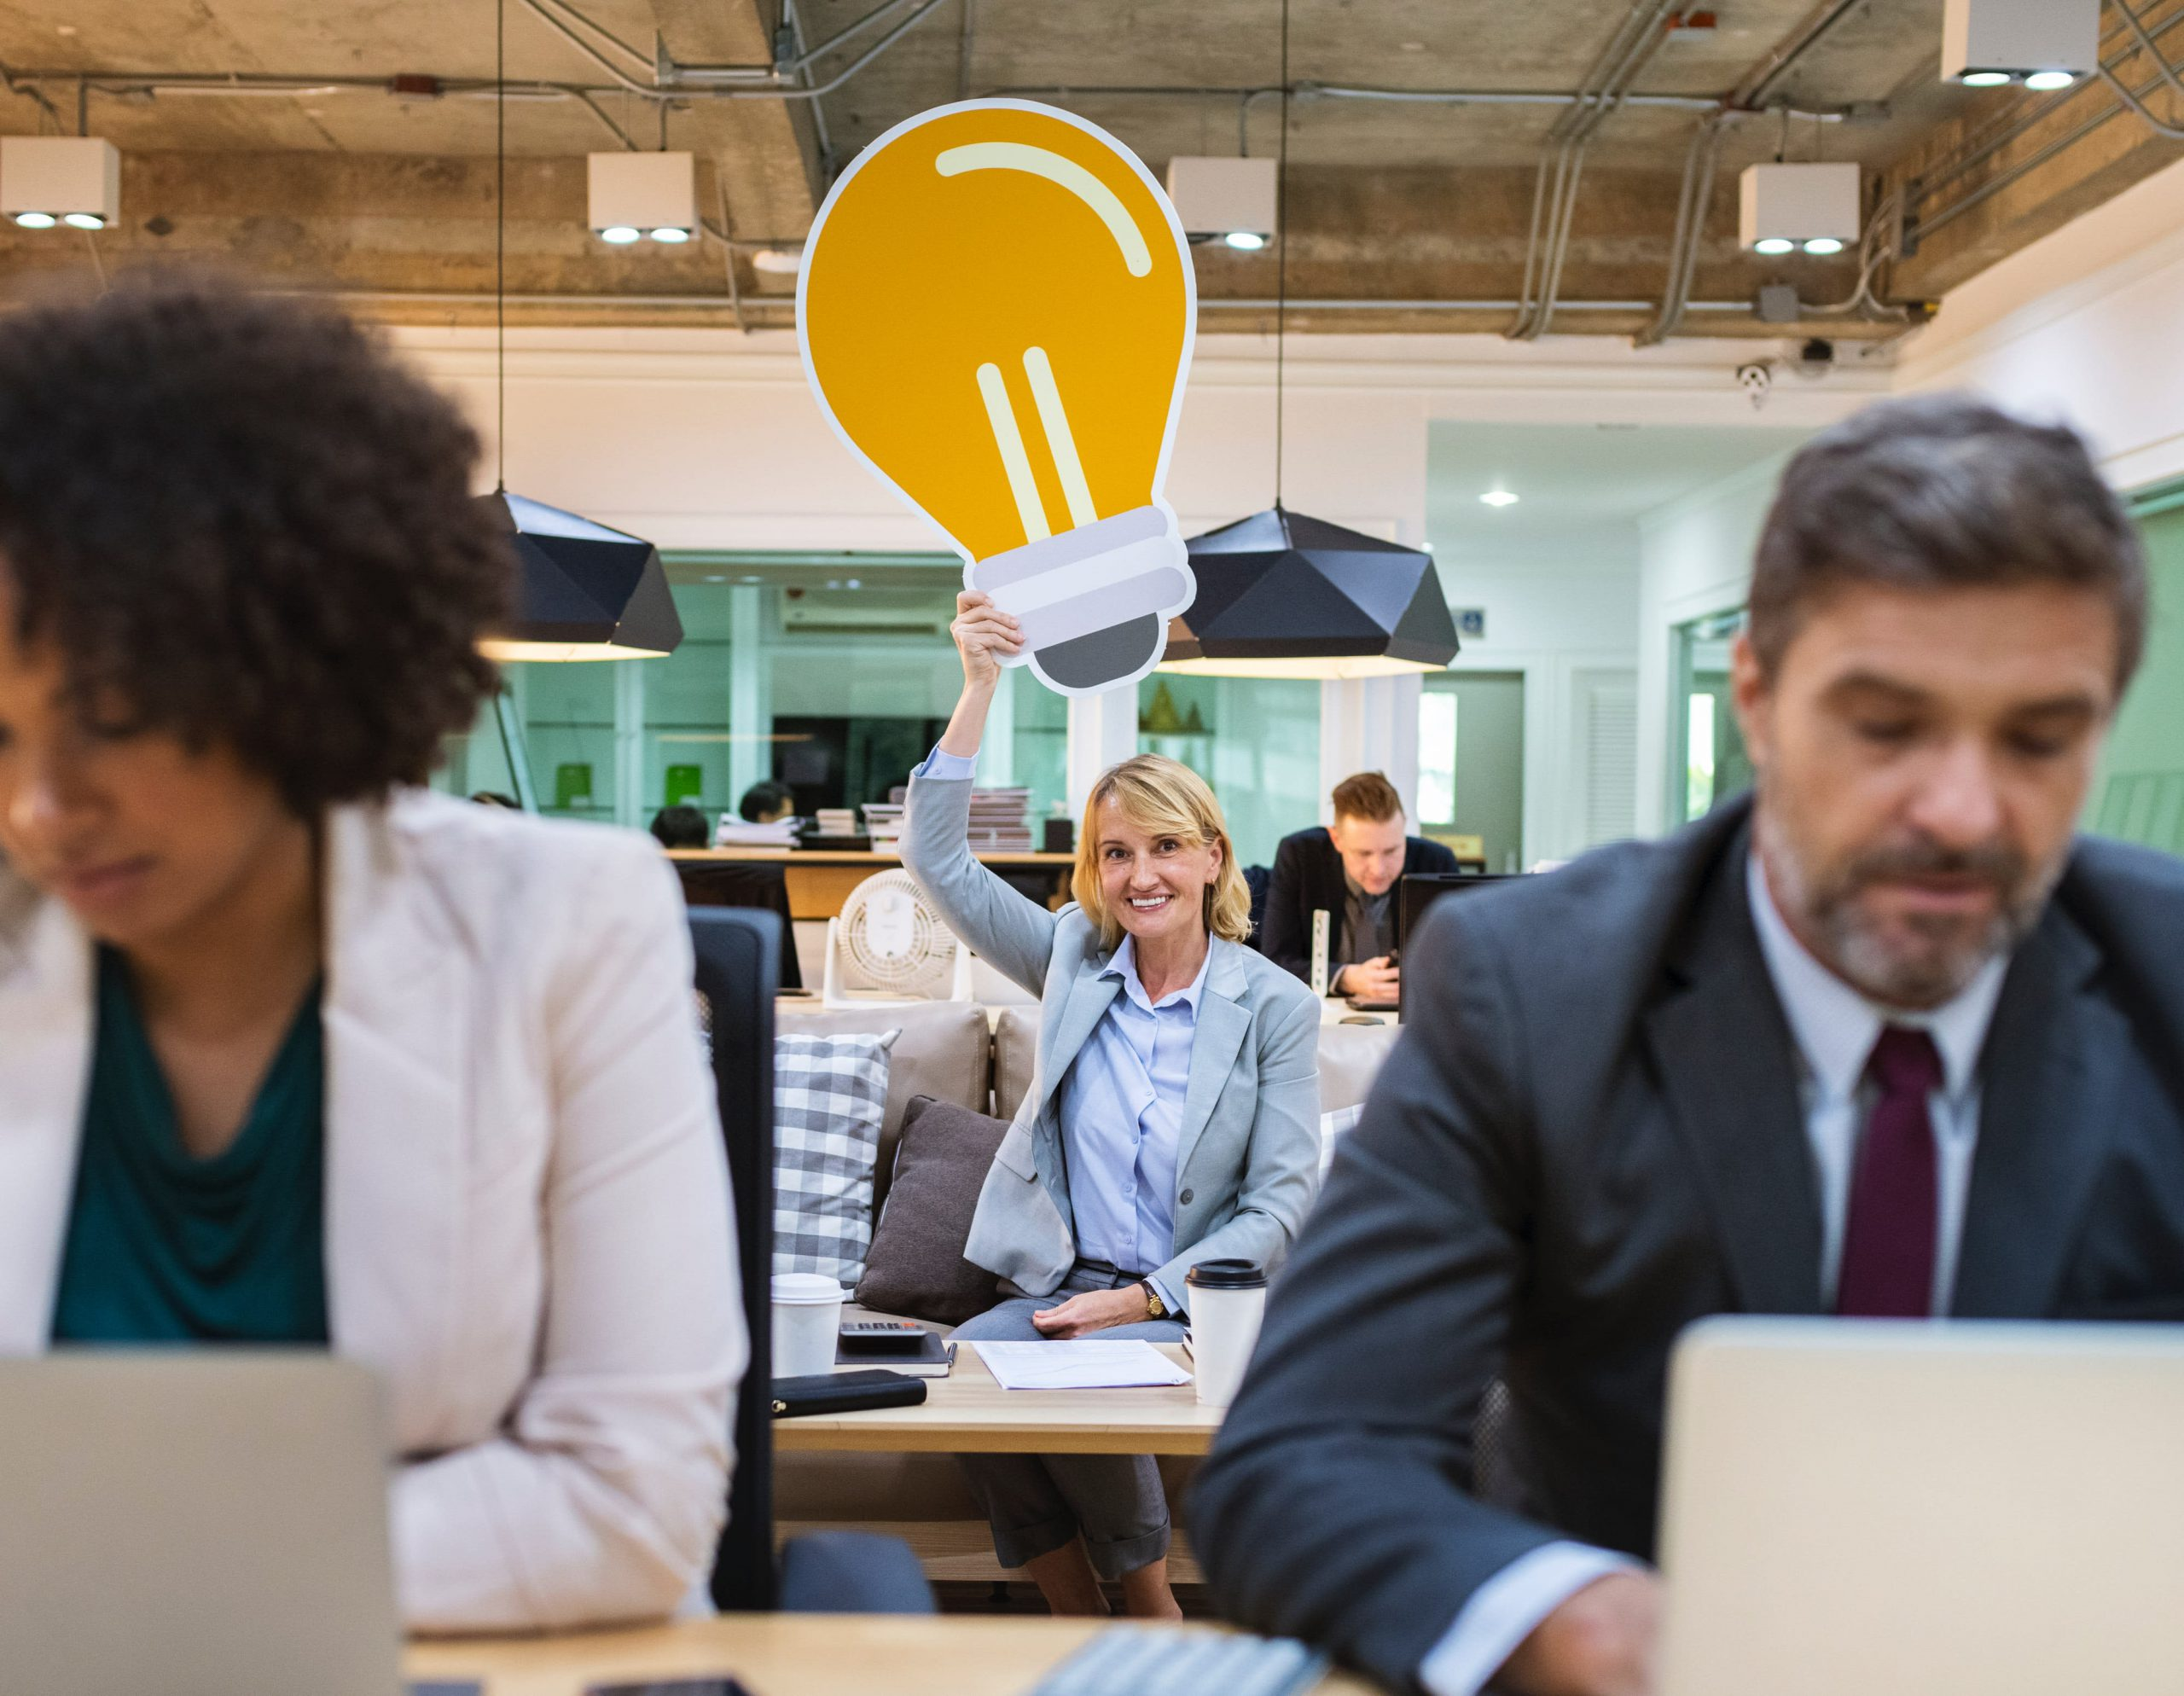 Woman holding lightbulb sign over her head in business office